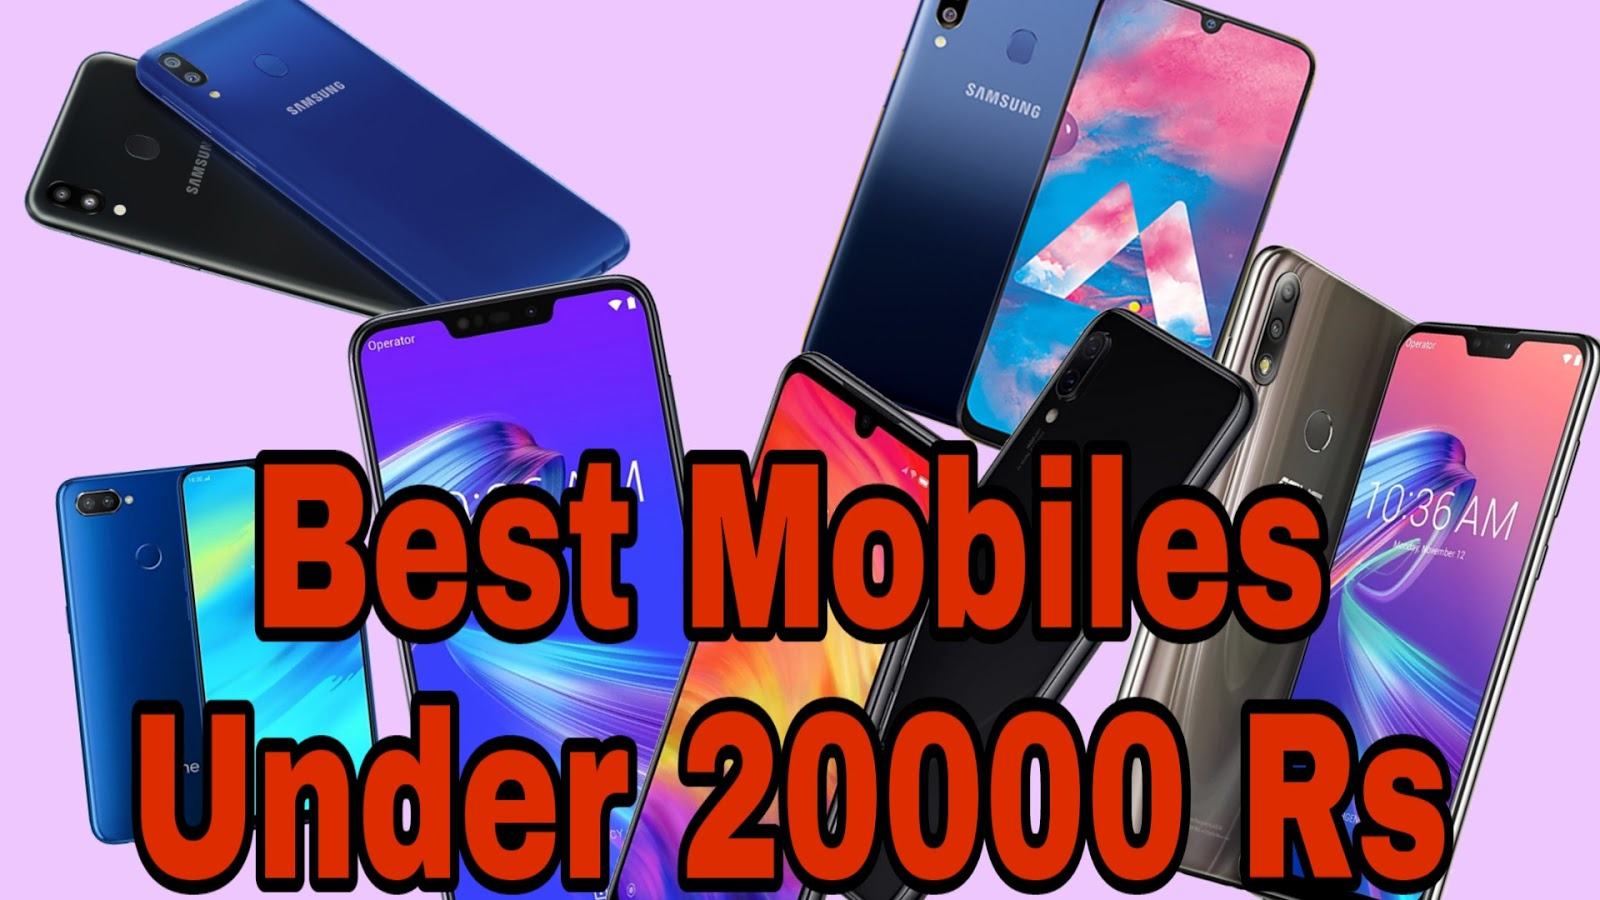 Best Mobile Phones Under 20000 Rs | My Opinion - GBS Infinity